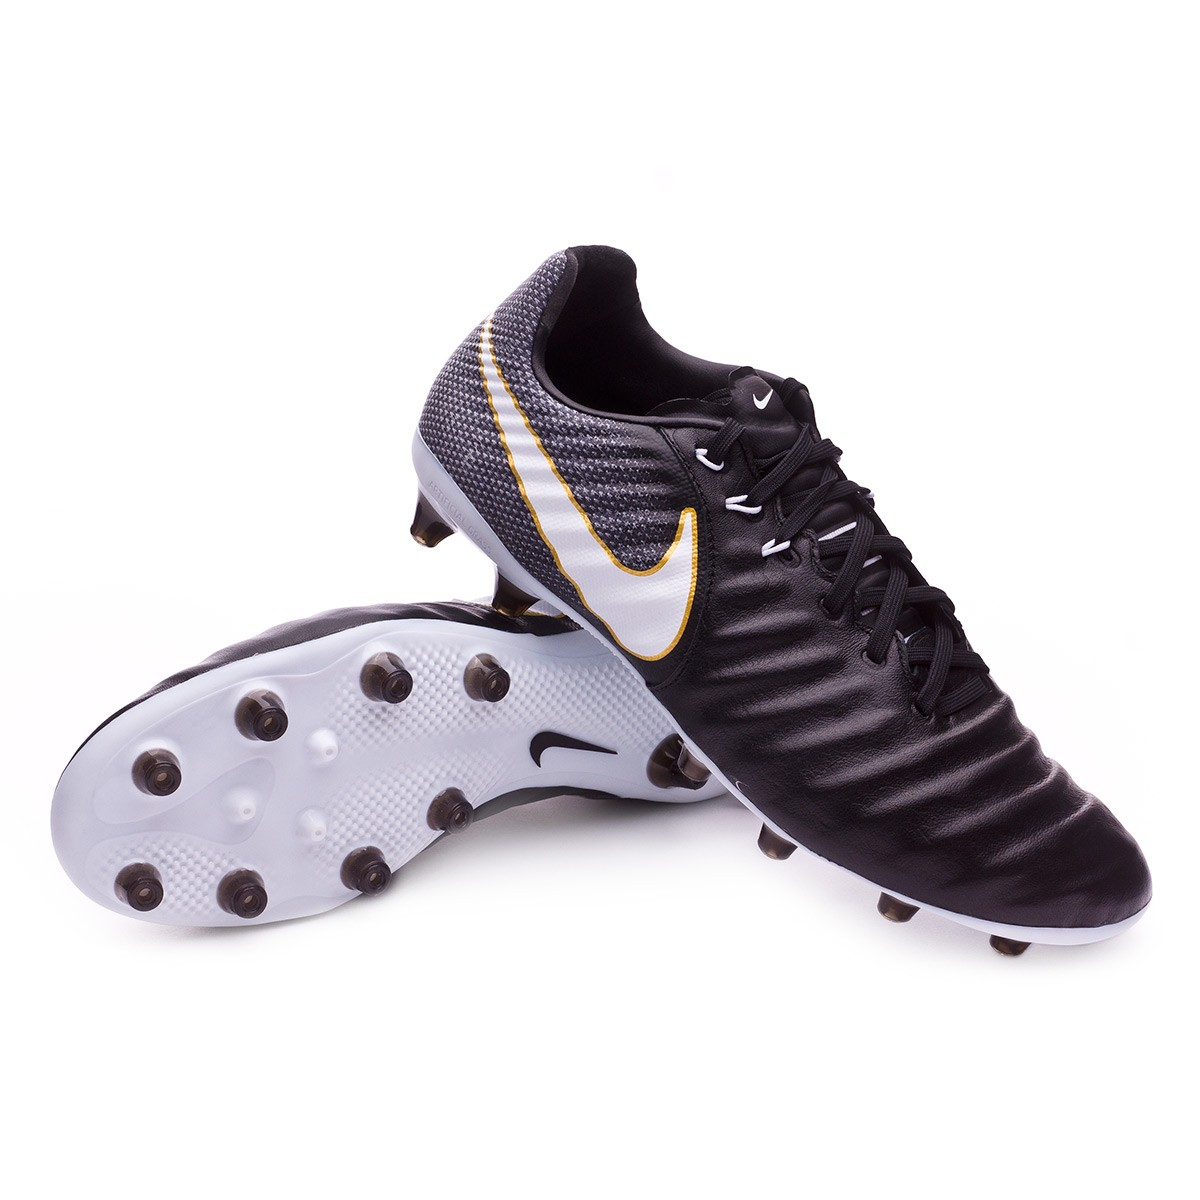 d771217f3cc53 Football Boots Nike Tiempo Legacy III AG-Pro Black-White - Football ...